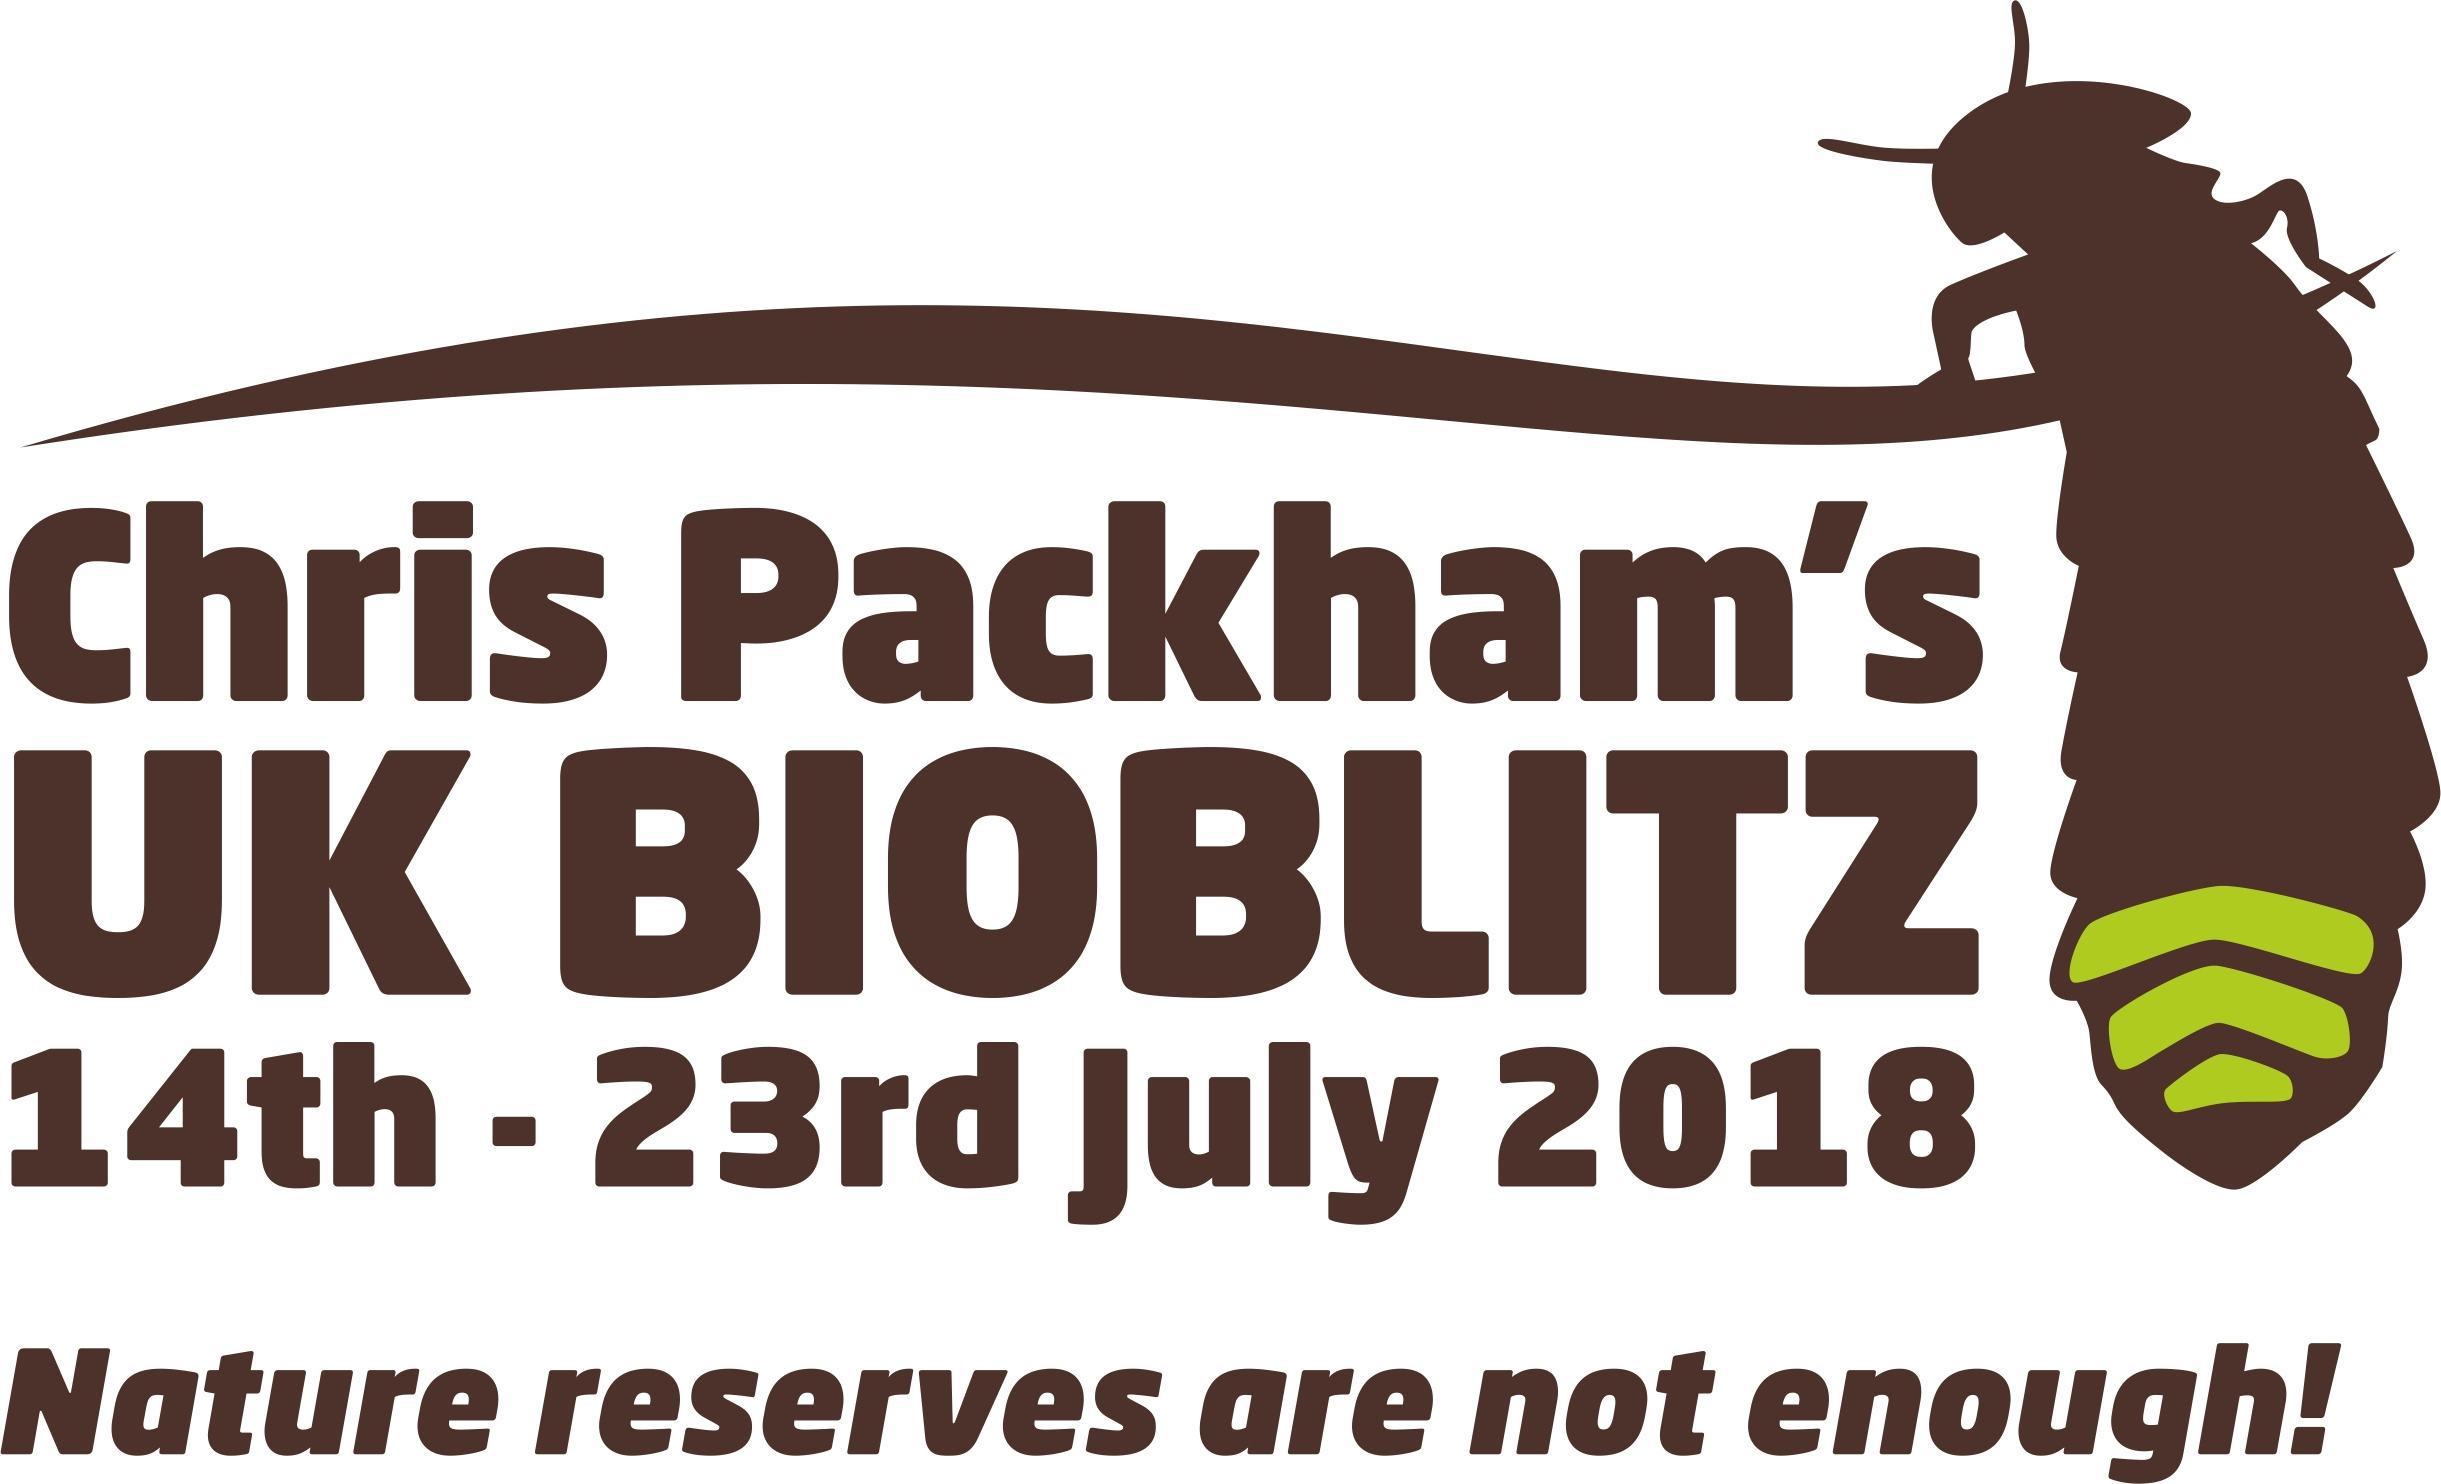 Chris Packhams Bioblitz Campaign is Coming to The Crescent